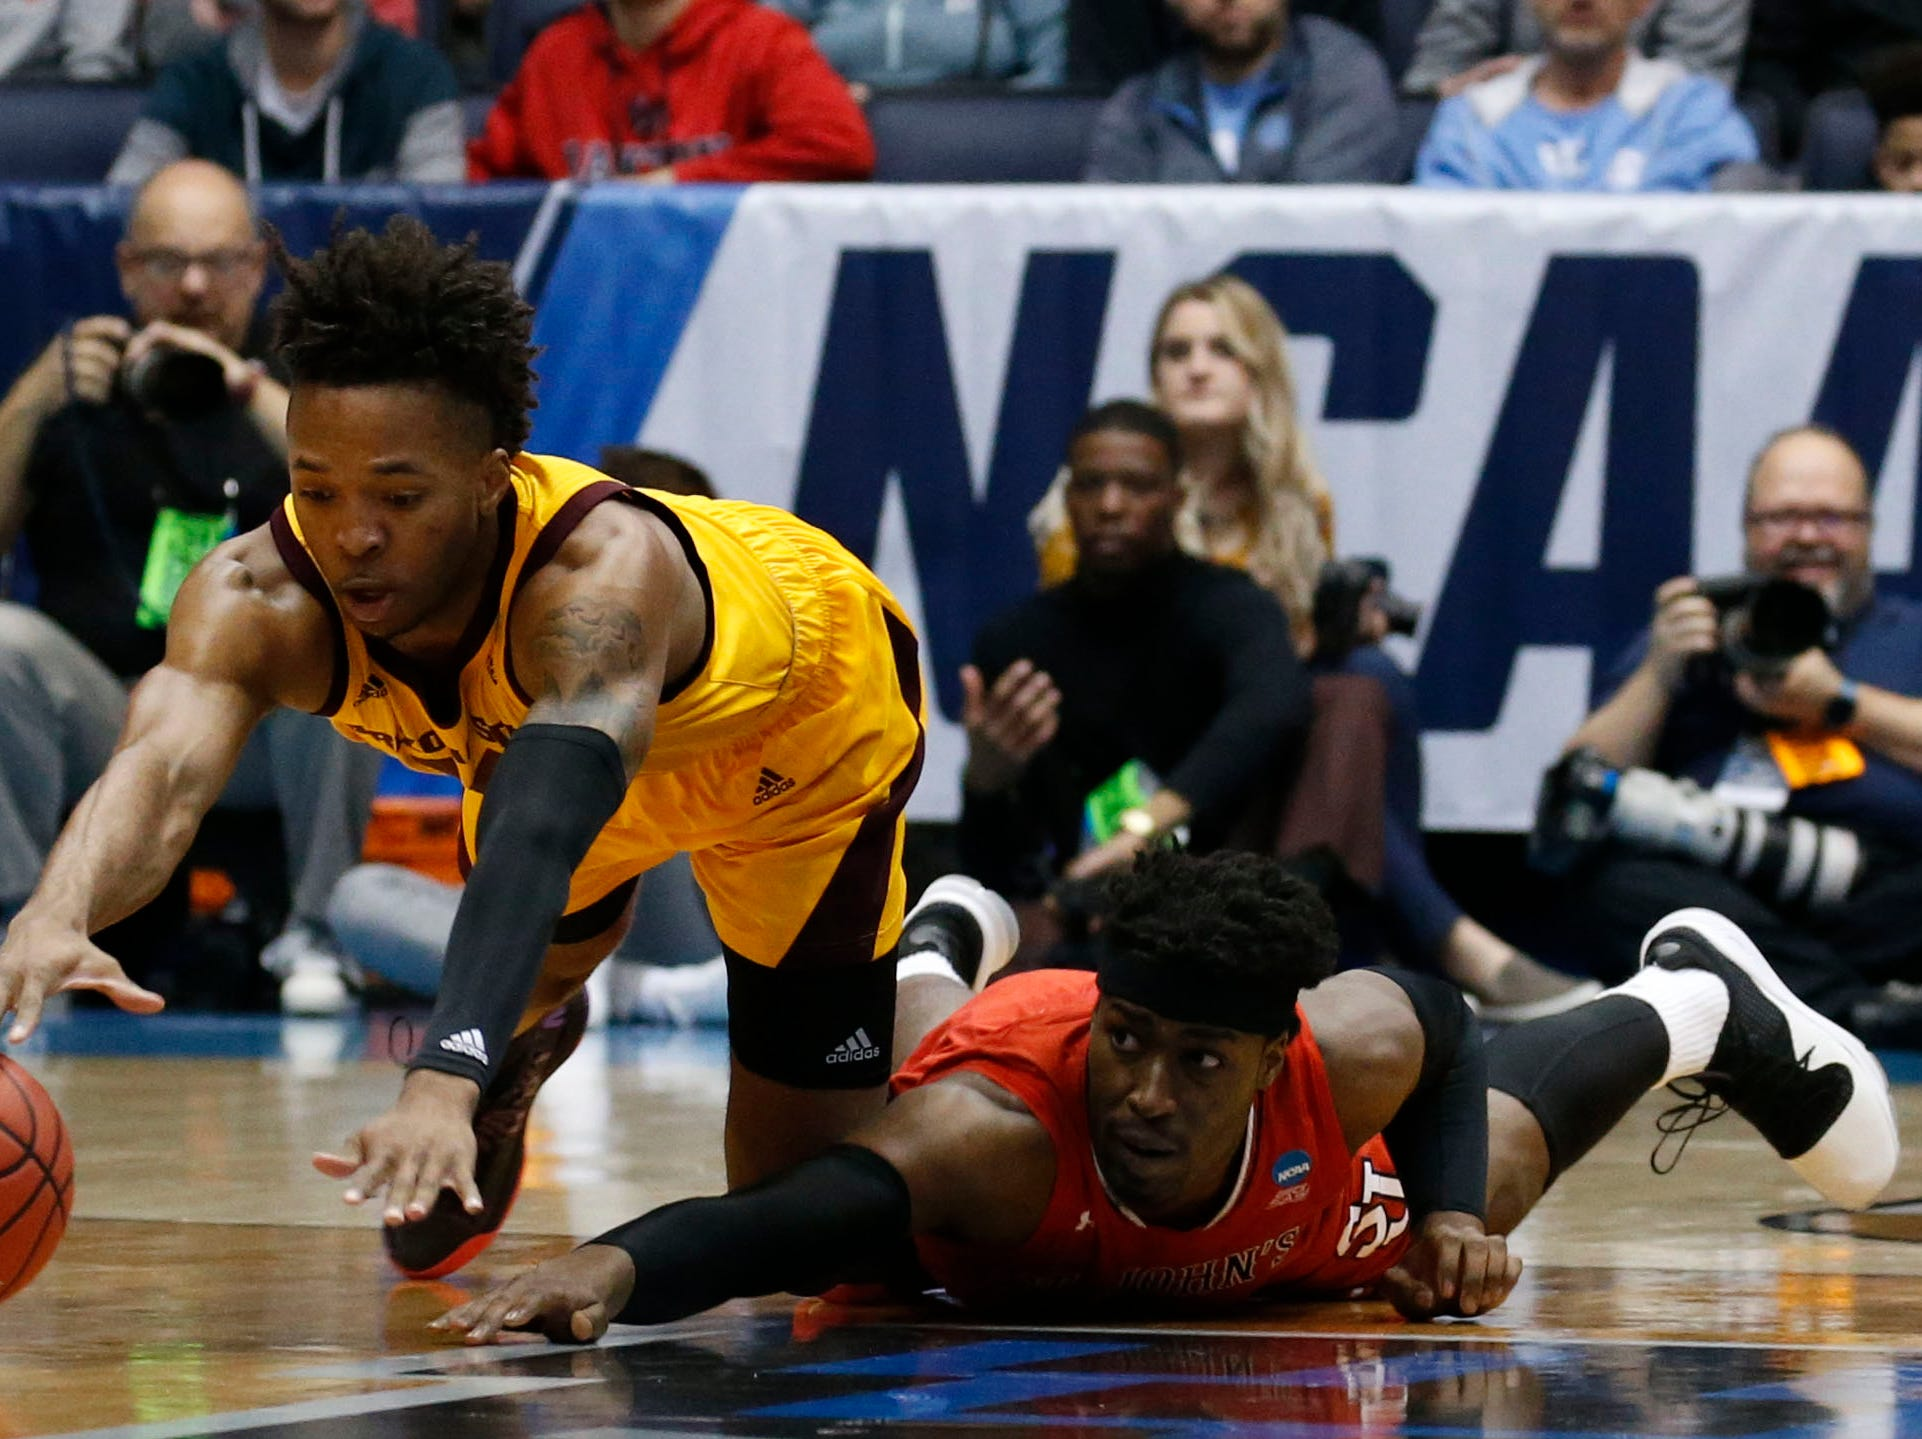 Arizona State Sun Devils forward Kimani Lawrence (14) and St. John's Red Storm forward Sedee Keita (0) dive for the ball in the first half.